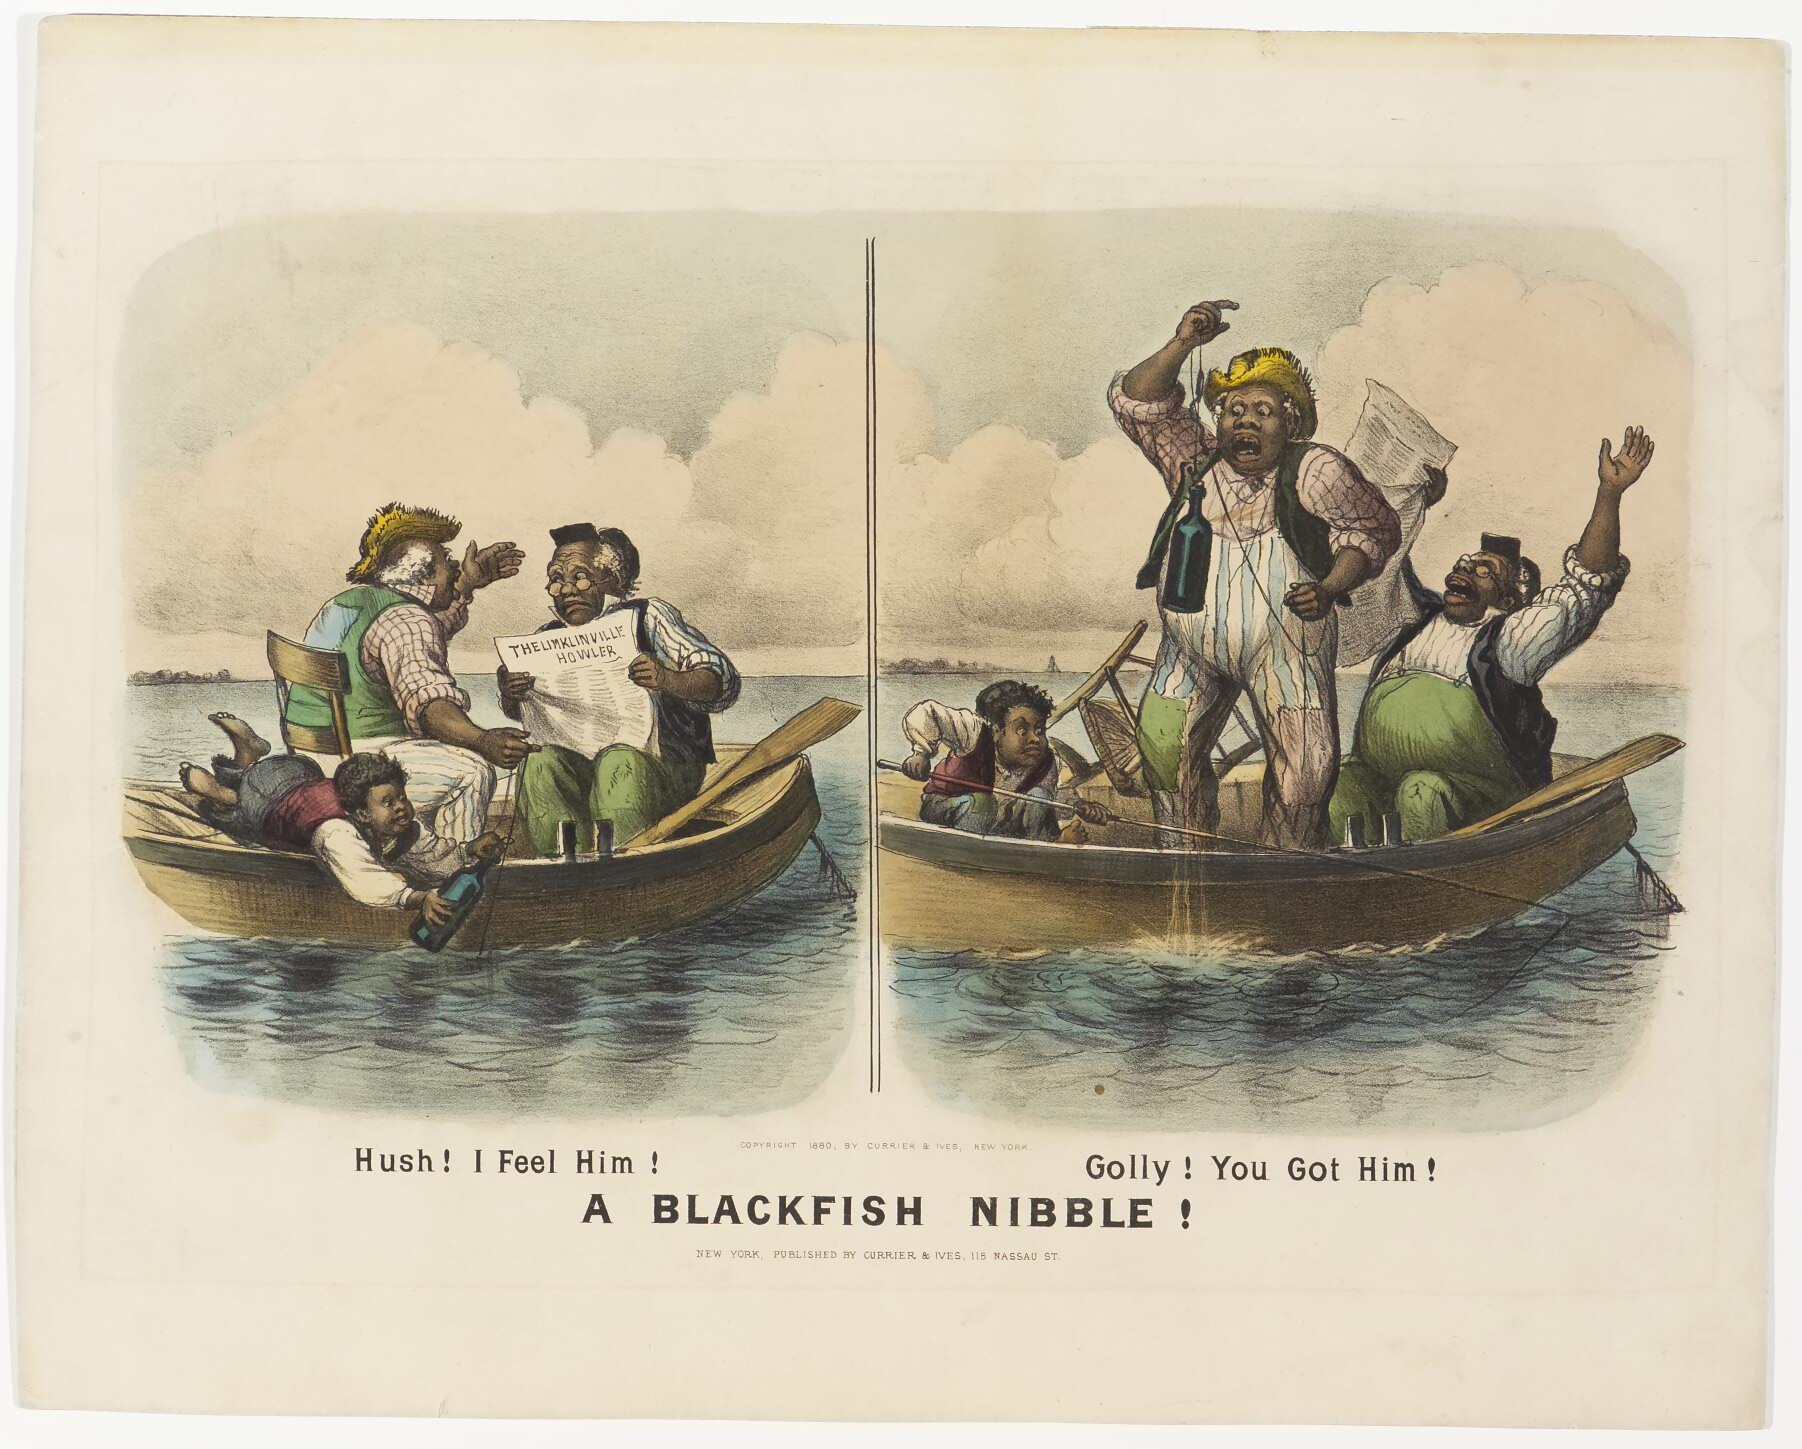 Left scene - two men and one boy in boat - one man arguing with other reading paper